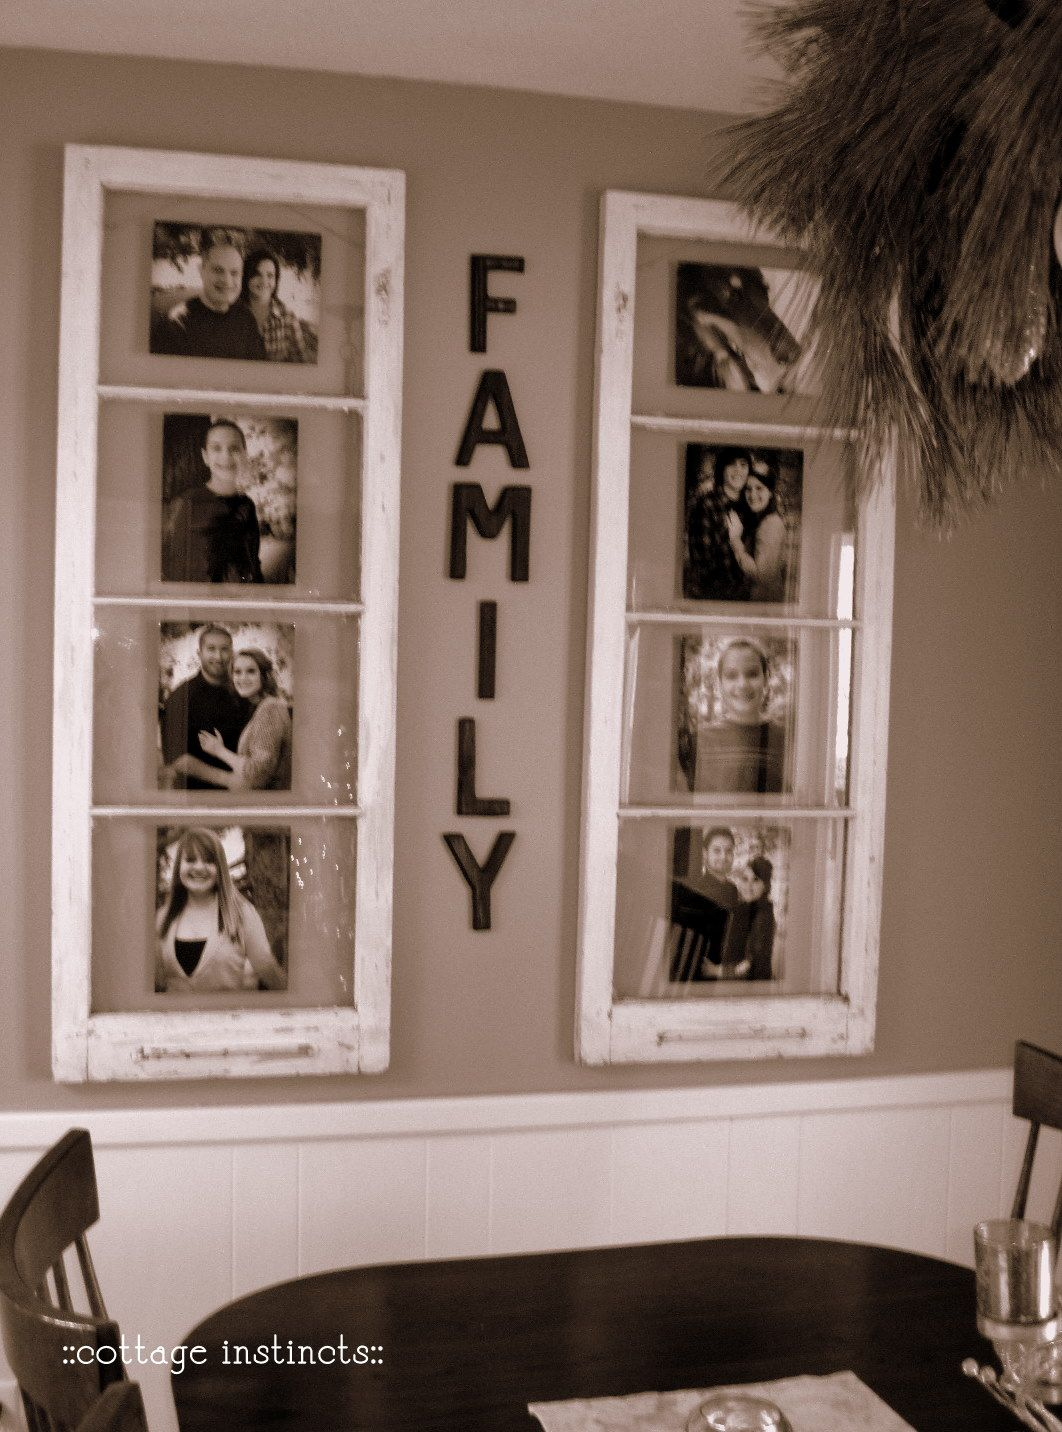 Old Windows Can Add A Unique Flavor To Your Home. This DIY Home Decor Idea  Turns Old Windows Into New Photo Frames.